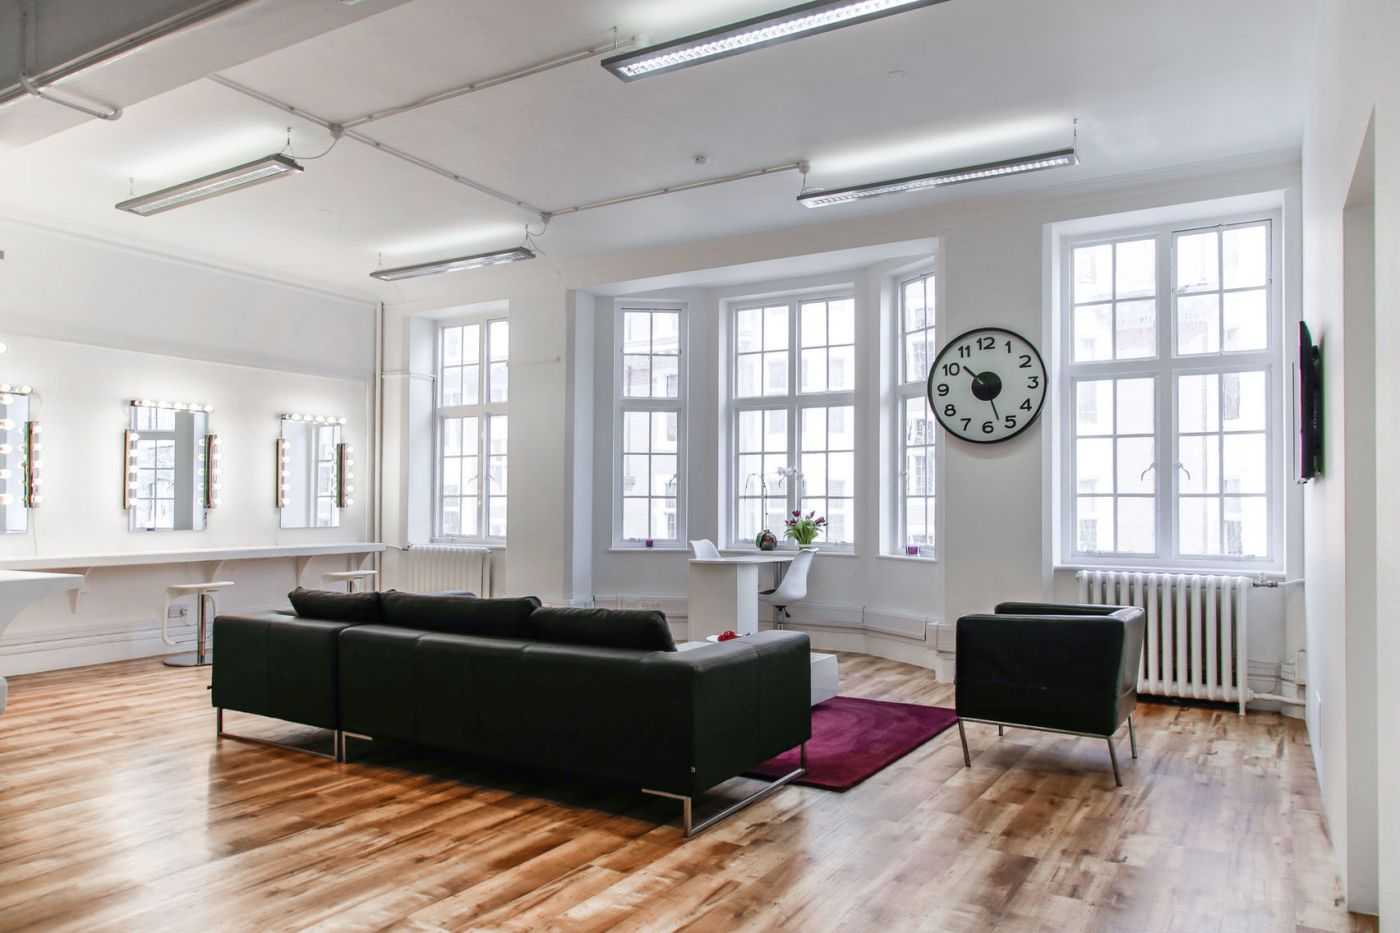 A large studio with two black sofas and large windows.